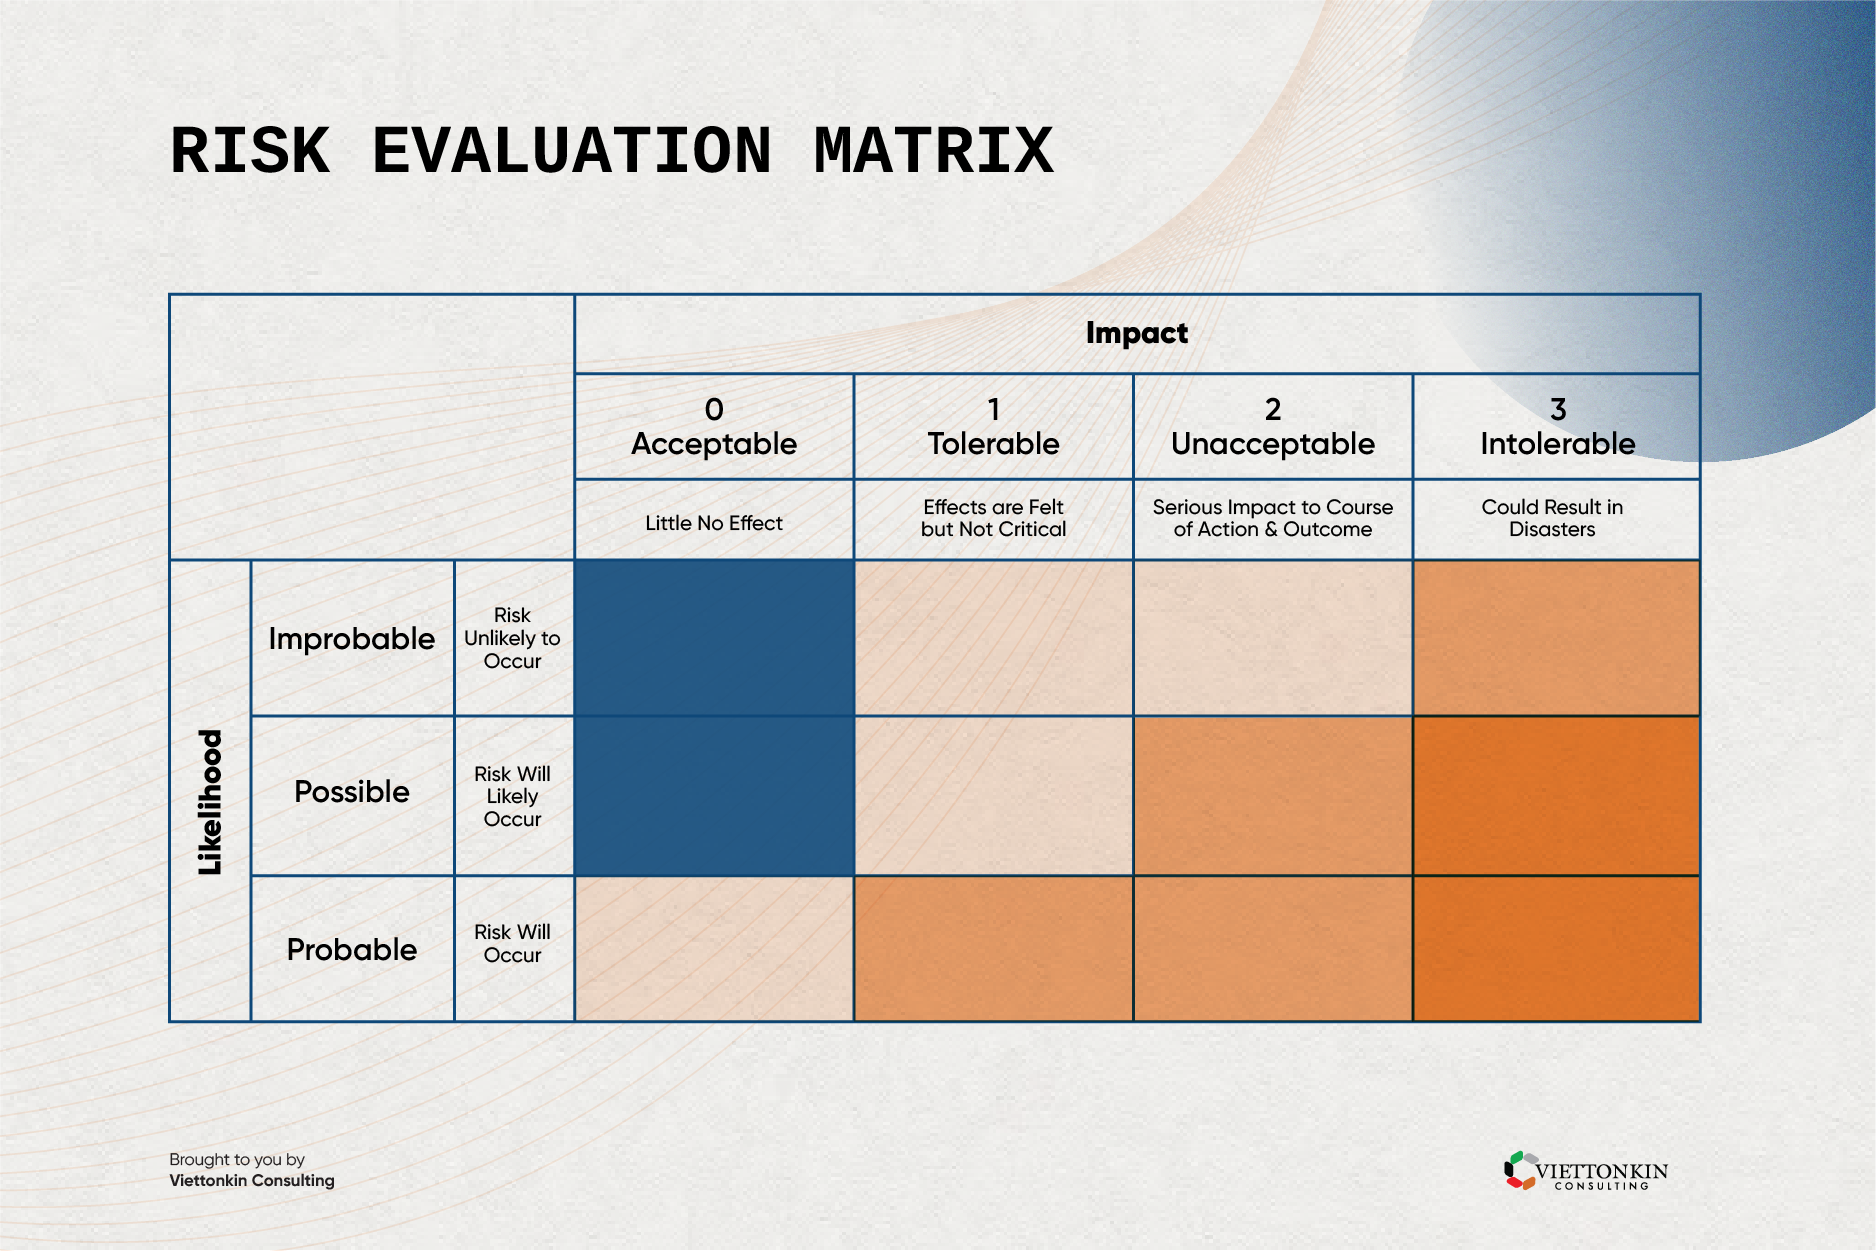 Risk evaluation matrix for business continuity plan